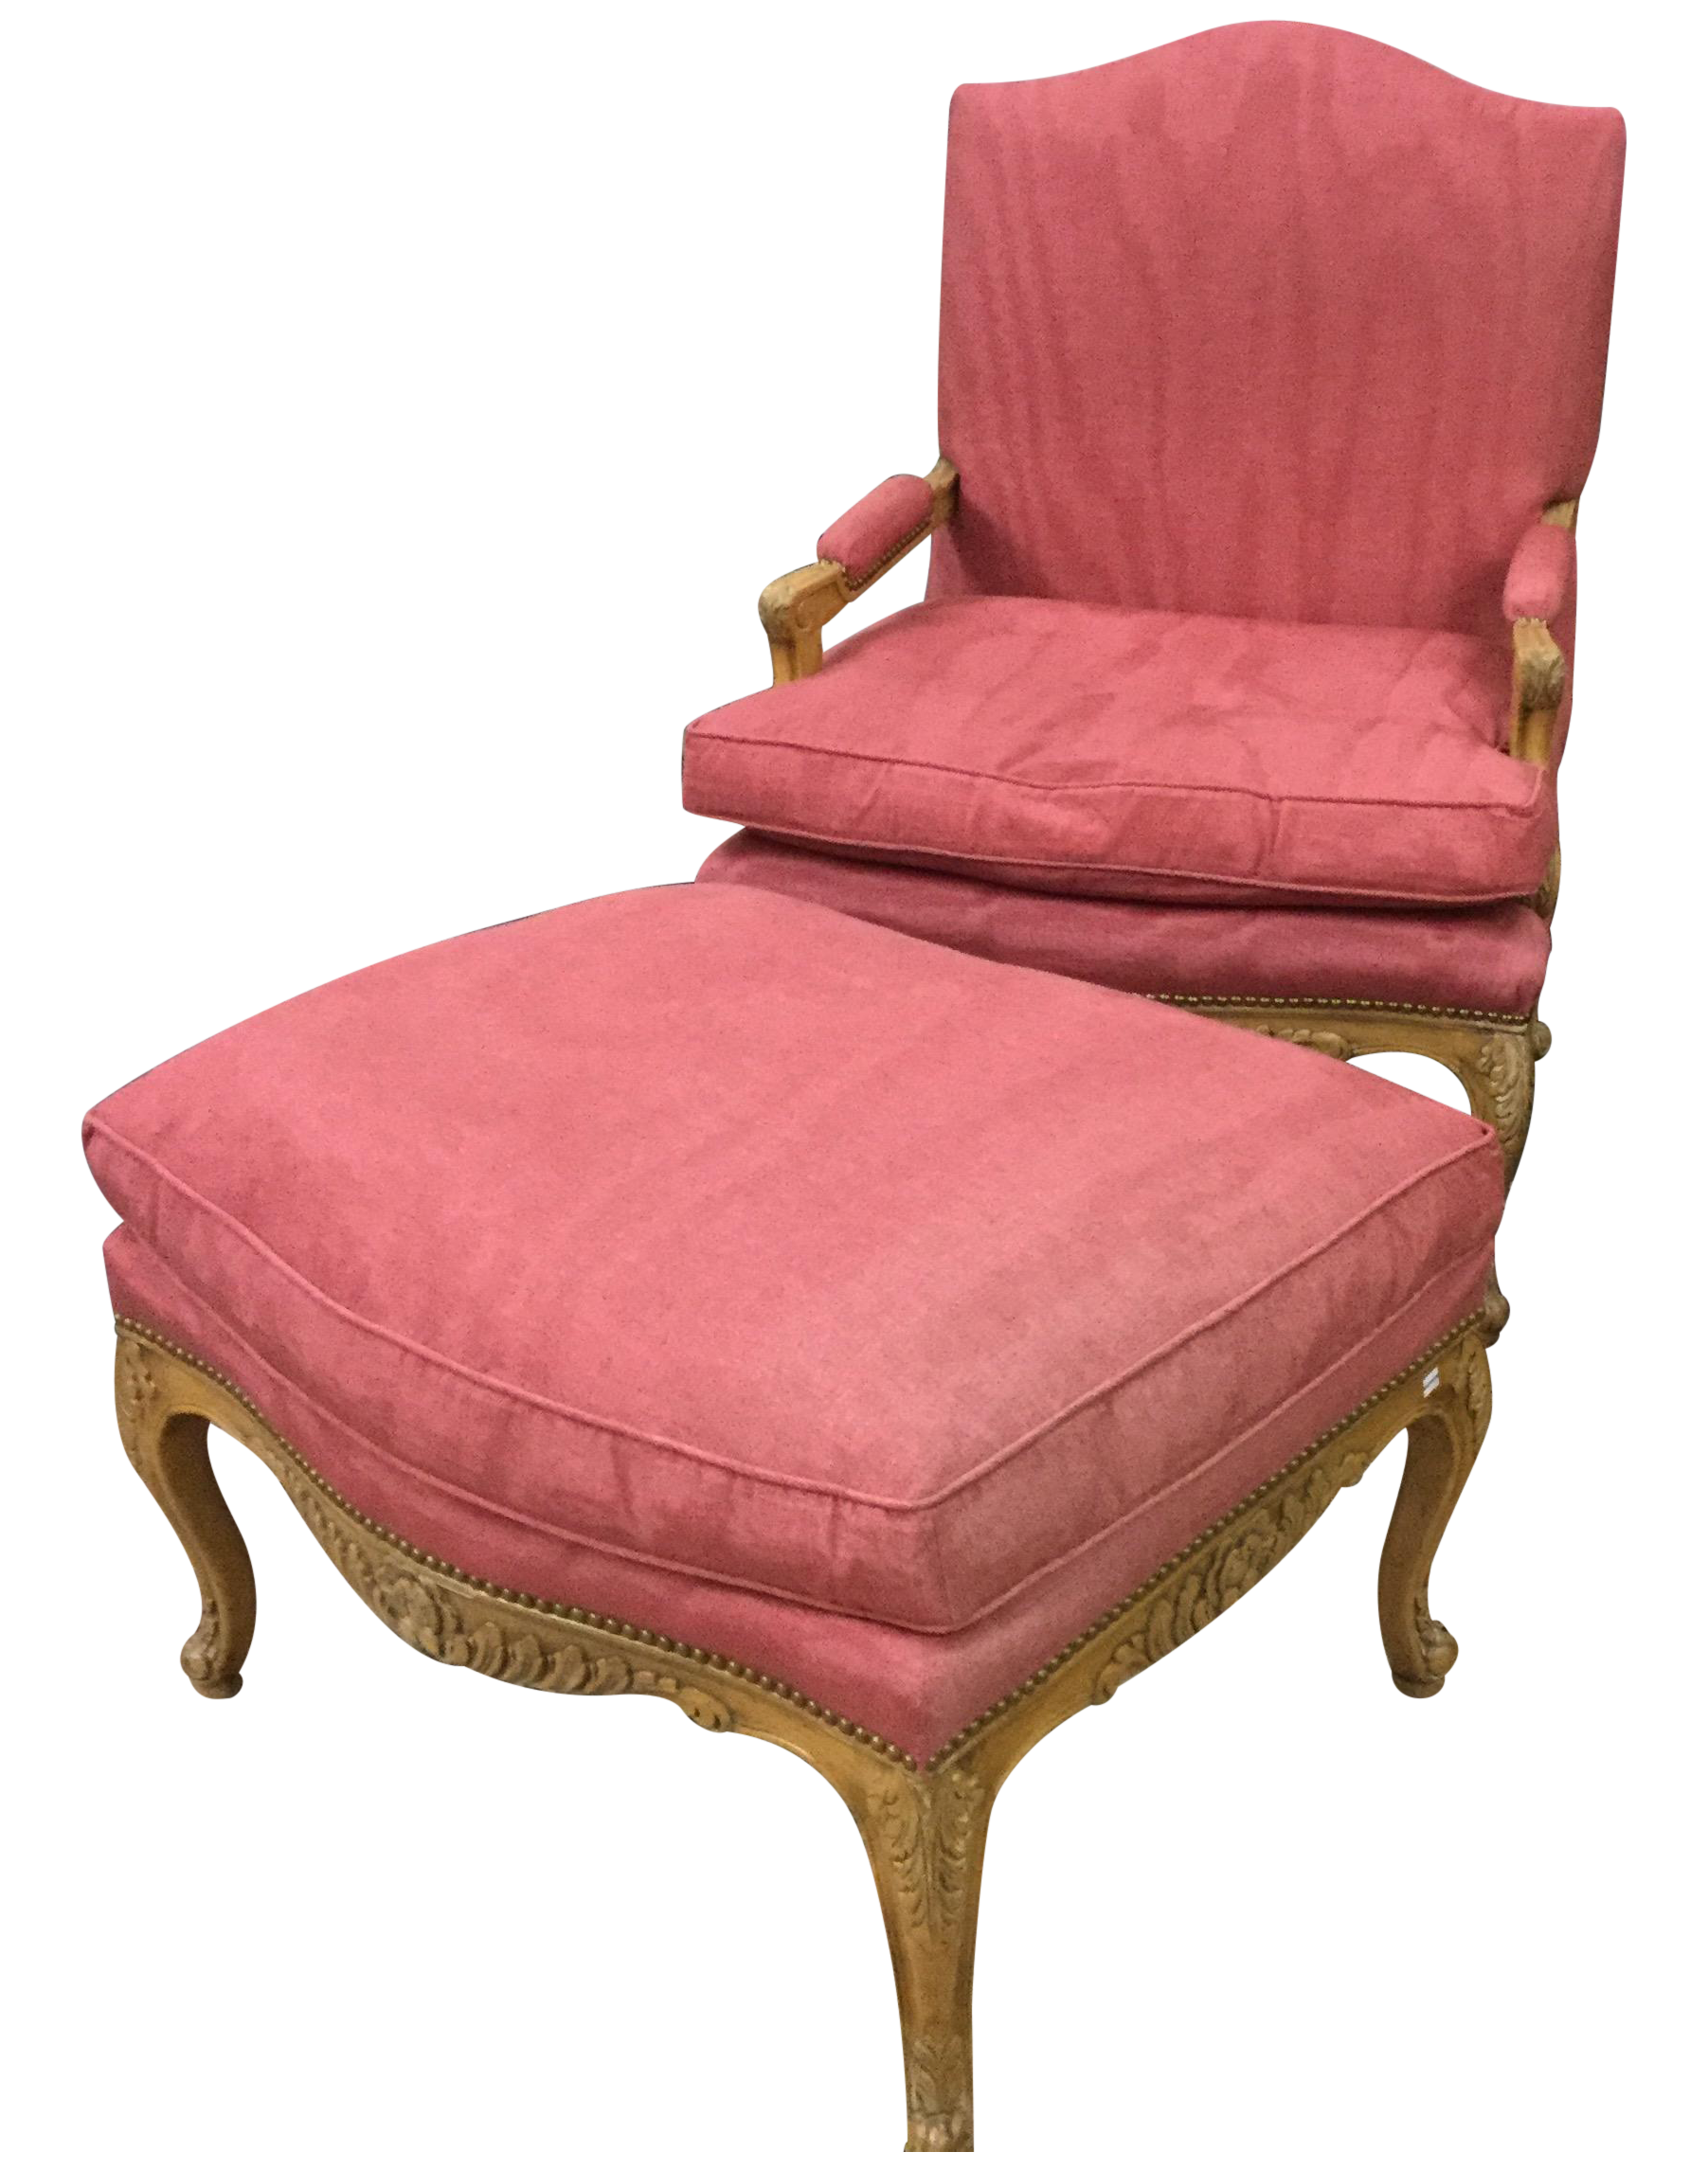 Bergere chair and ottoman - Image Of Vintage French Country Berg Re Chair Ottoman